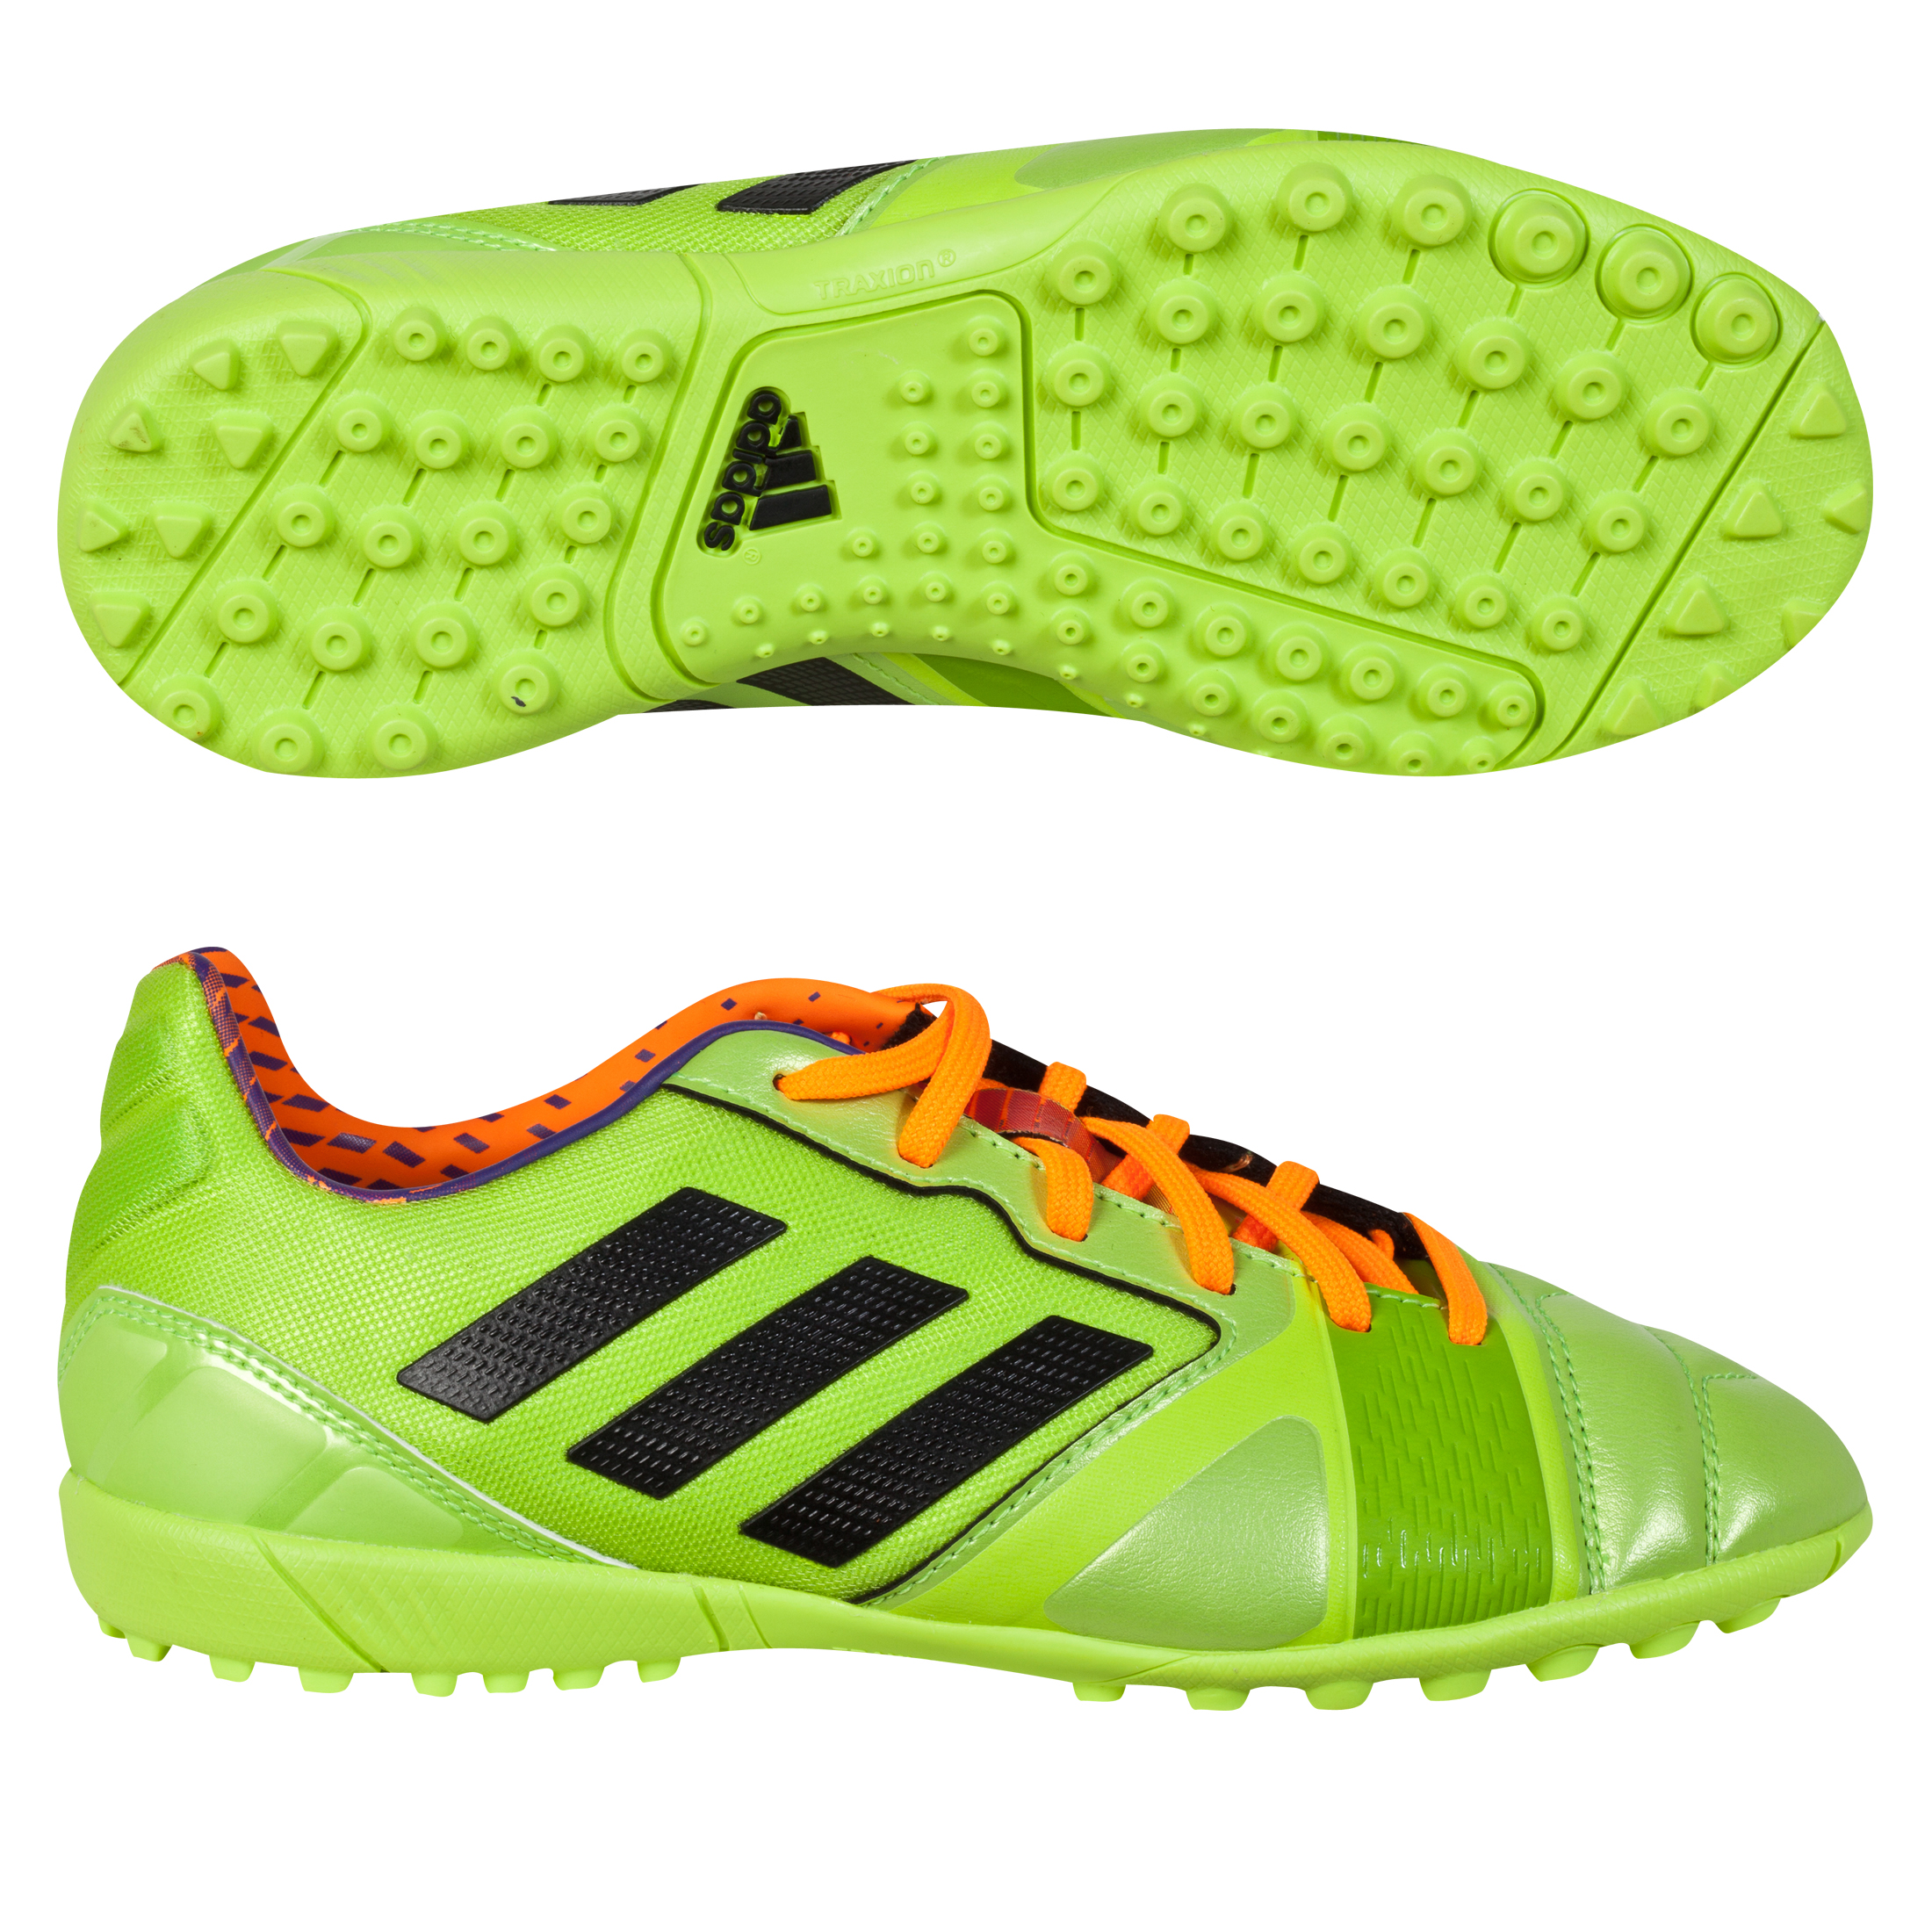 Adidas Nitrocharge 2.0 TRX Astroturf Trainers - Kids Green